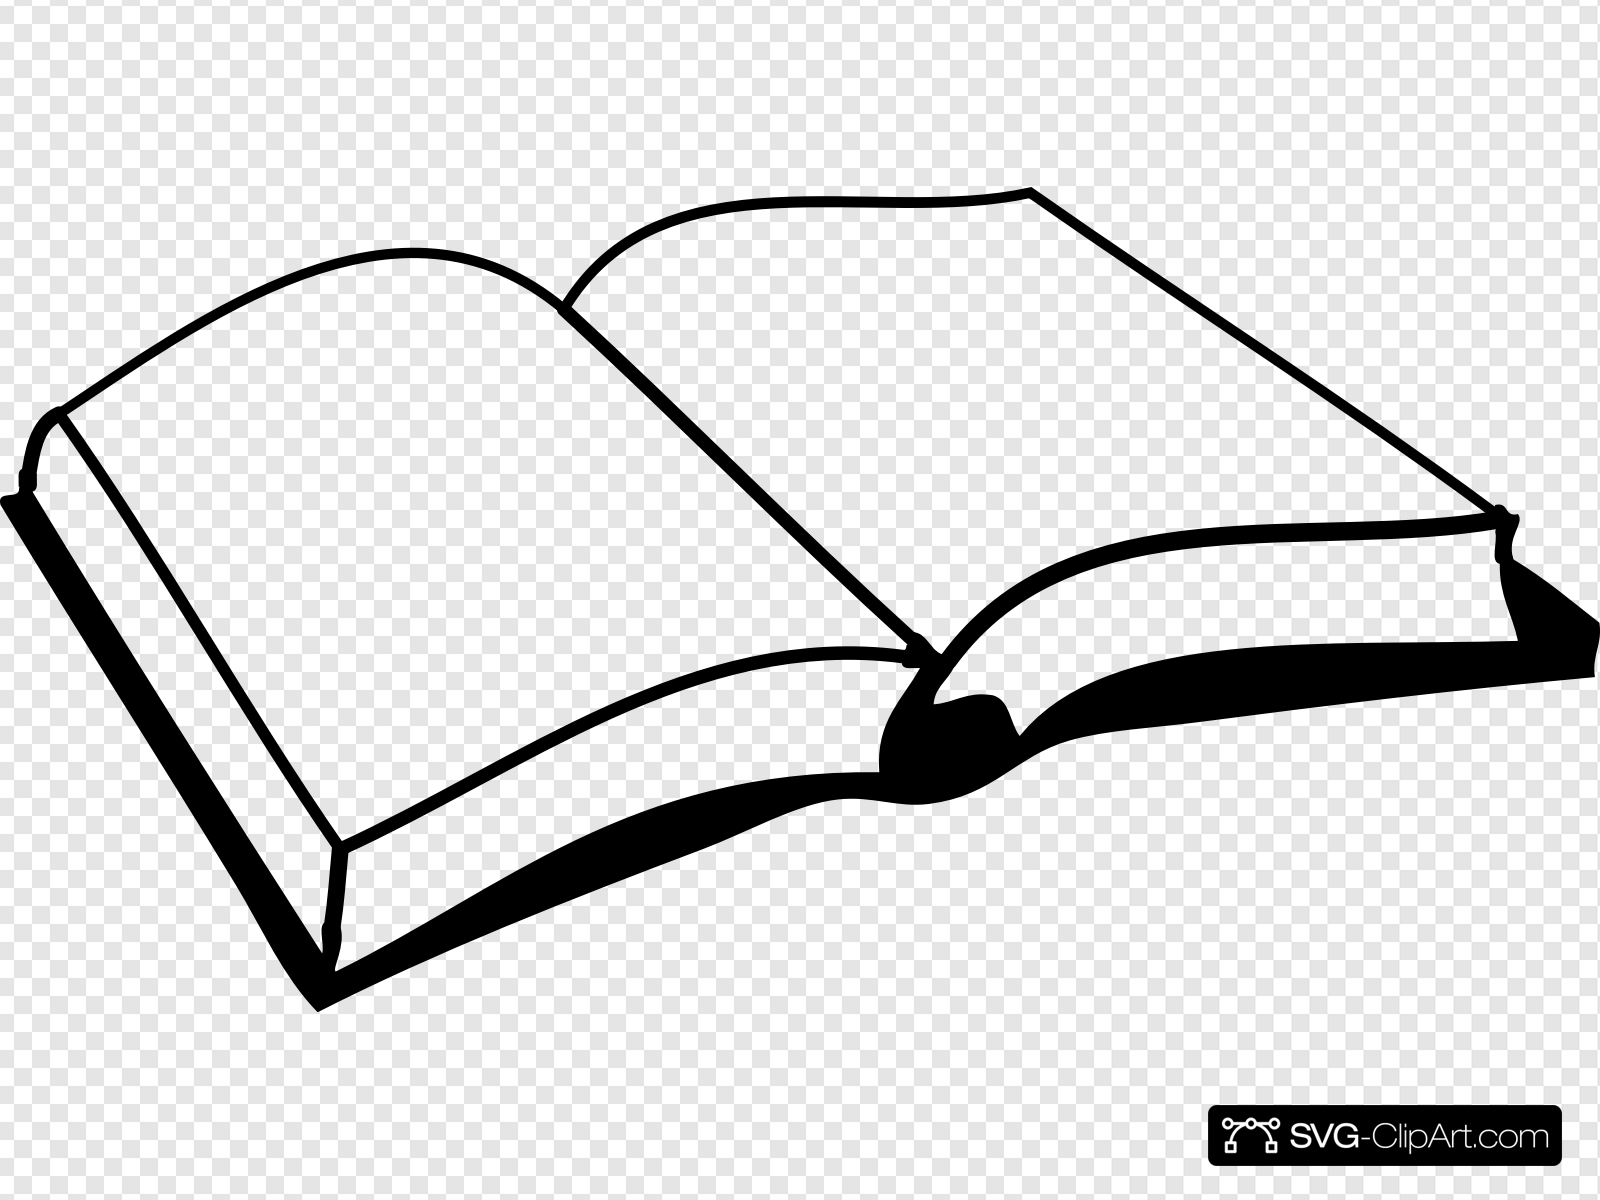 Open Book Clip art, Icon and SVG